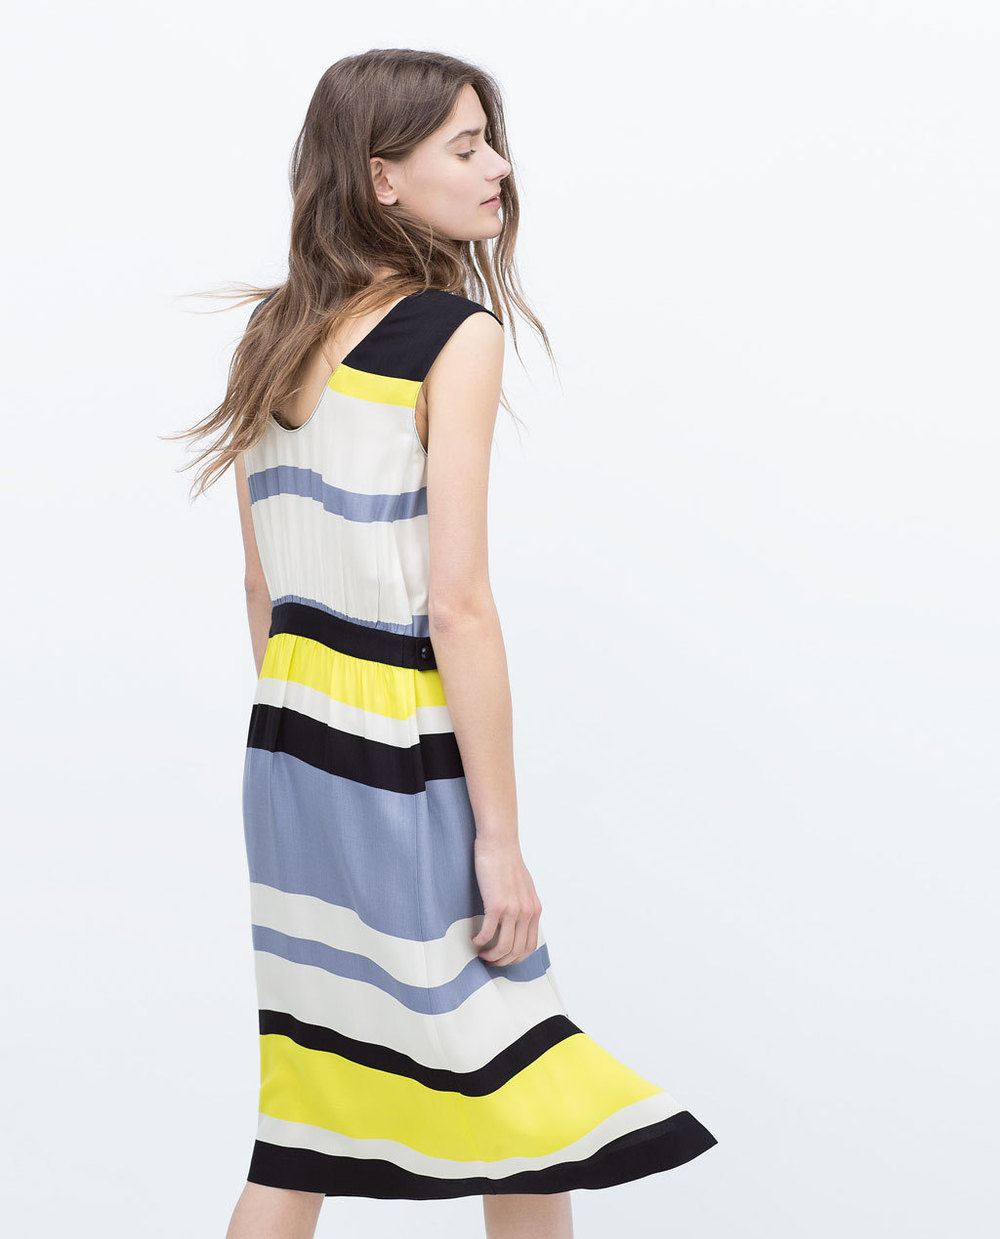 To acquire White and yellow sundress pictures trends